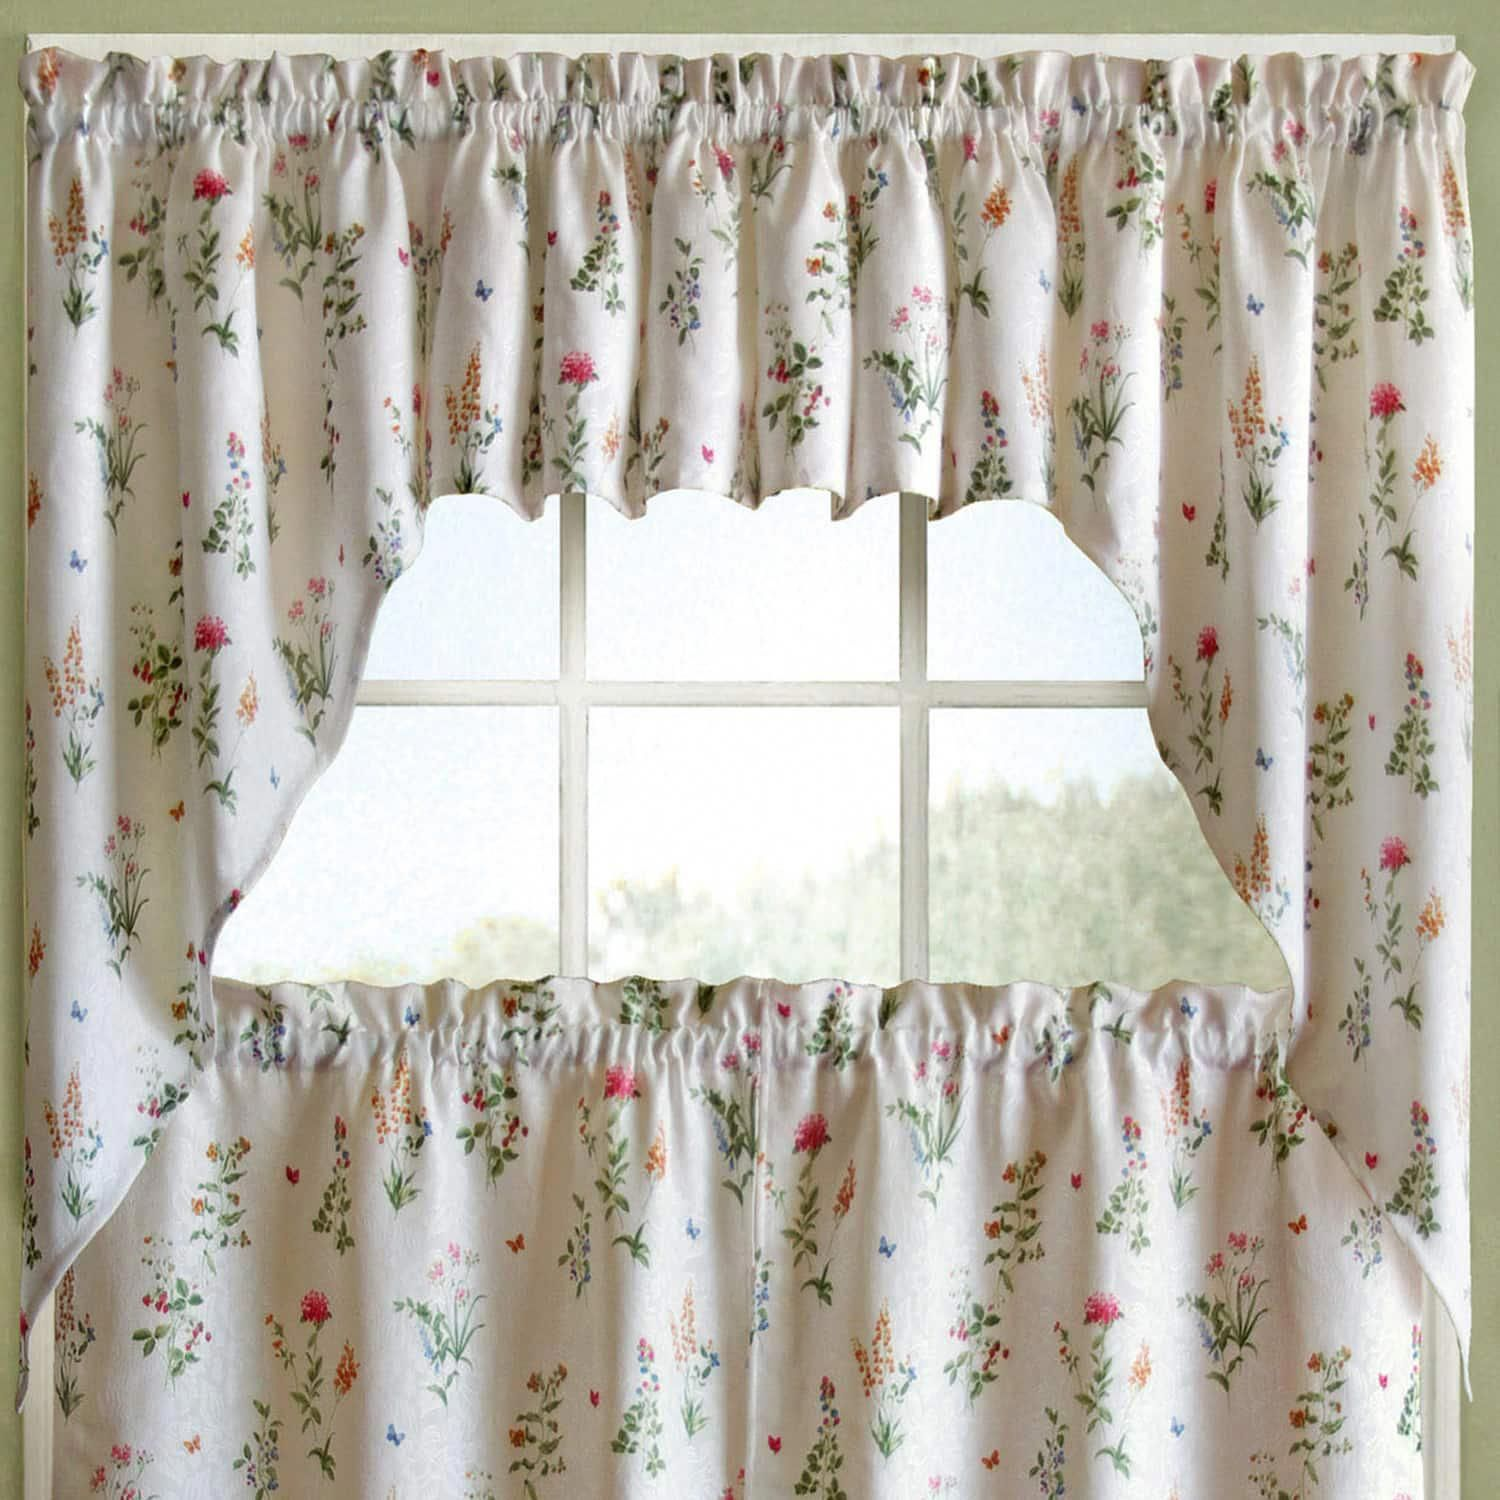 9ef936ae11f036967575278e118ec3e9 - Better Homes And Gardens Ivy Kitchen Curtain Set